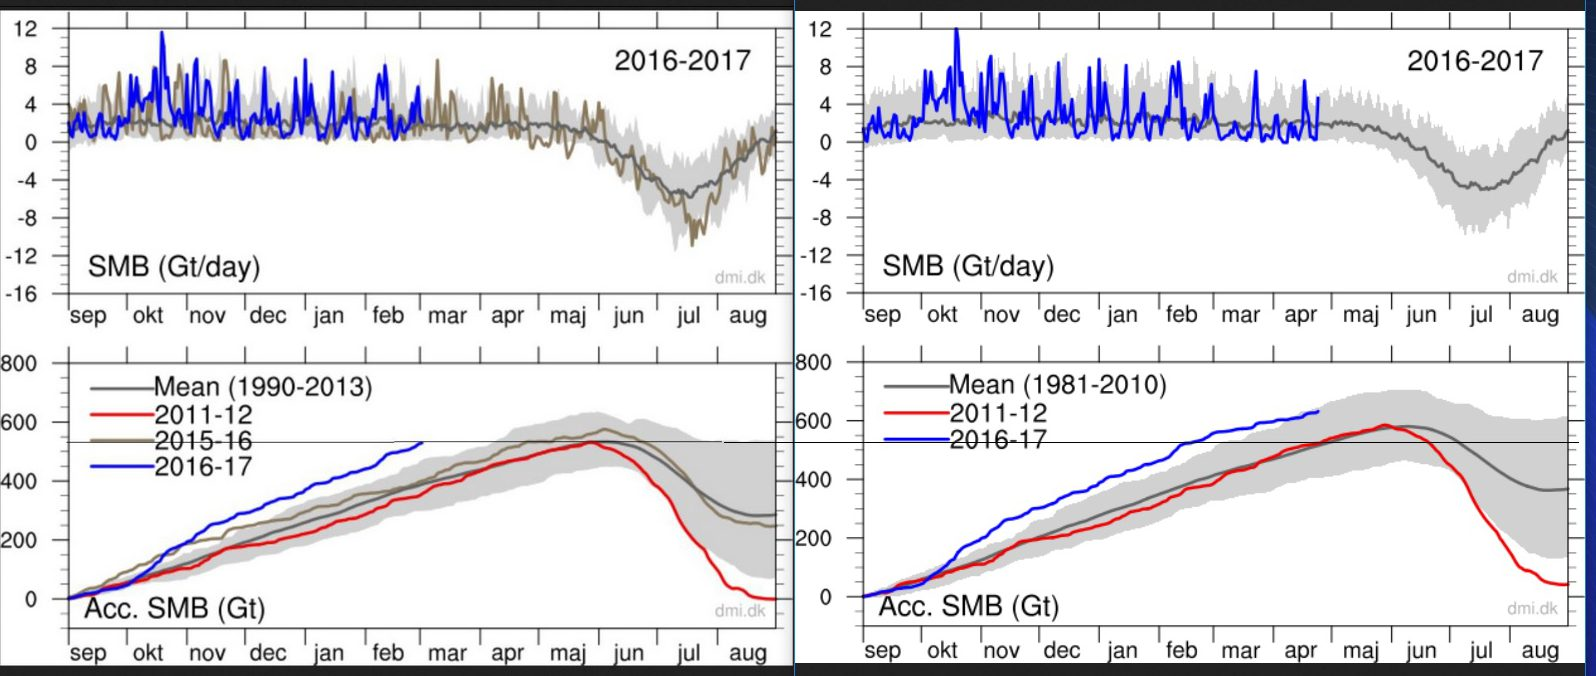 Danish Meteorological Institute Moves To Obscure Recent